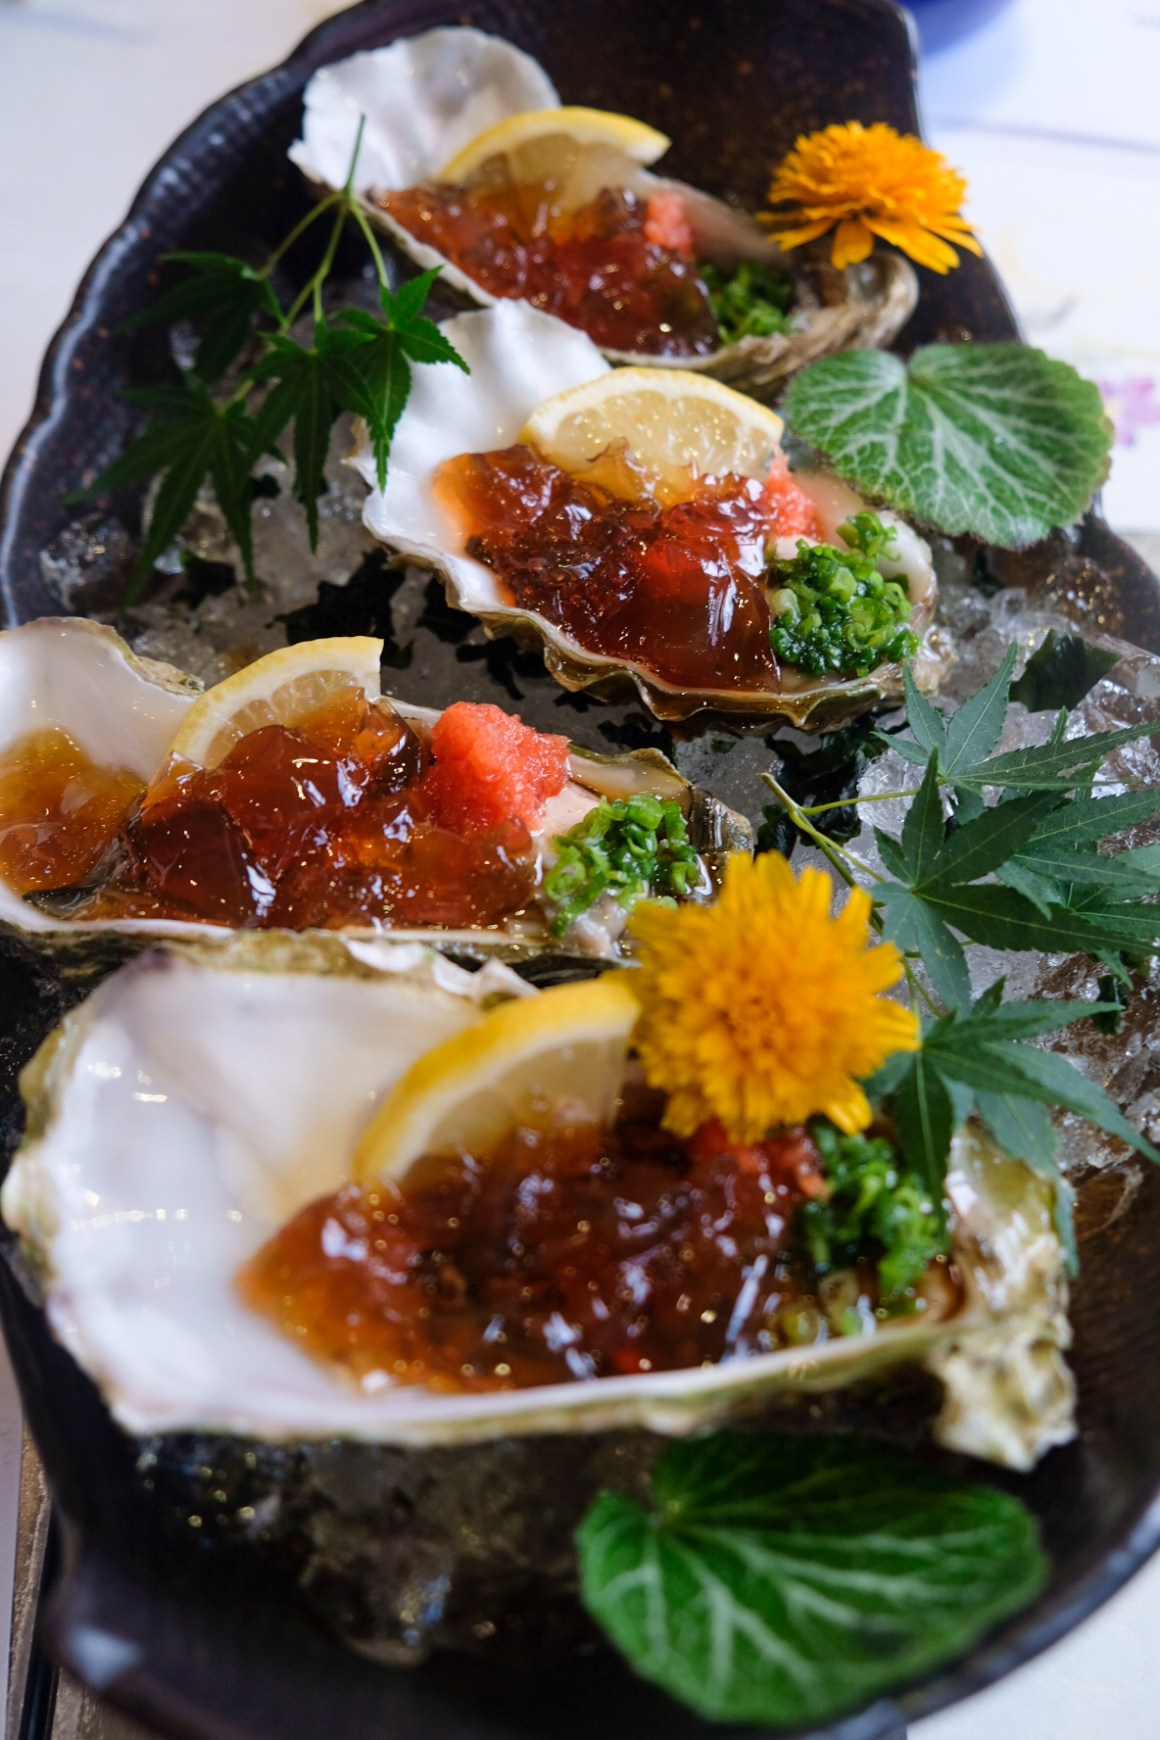 Sushi Airways, Dine In DC-3 Inspired Ambience - Oyster with Ponzu Jelly ($9 small, $15 medium, per piece)(seasonal item)